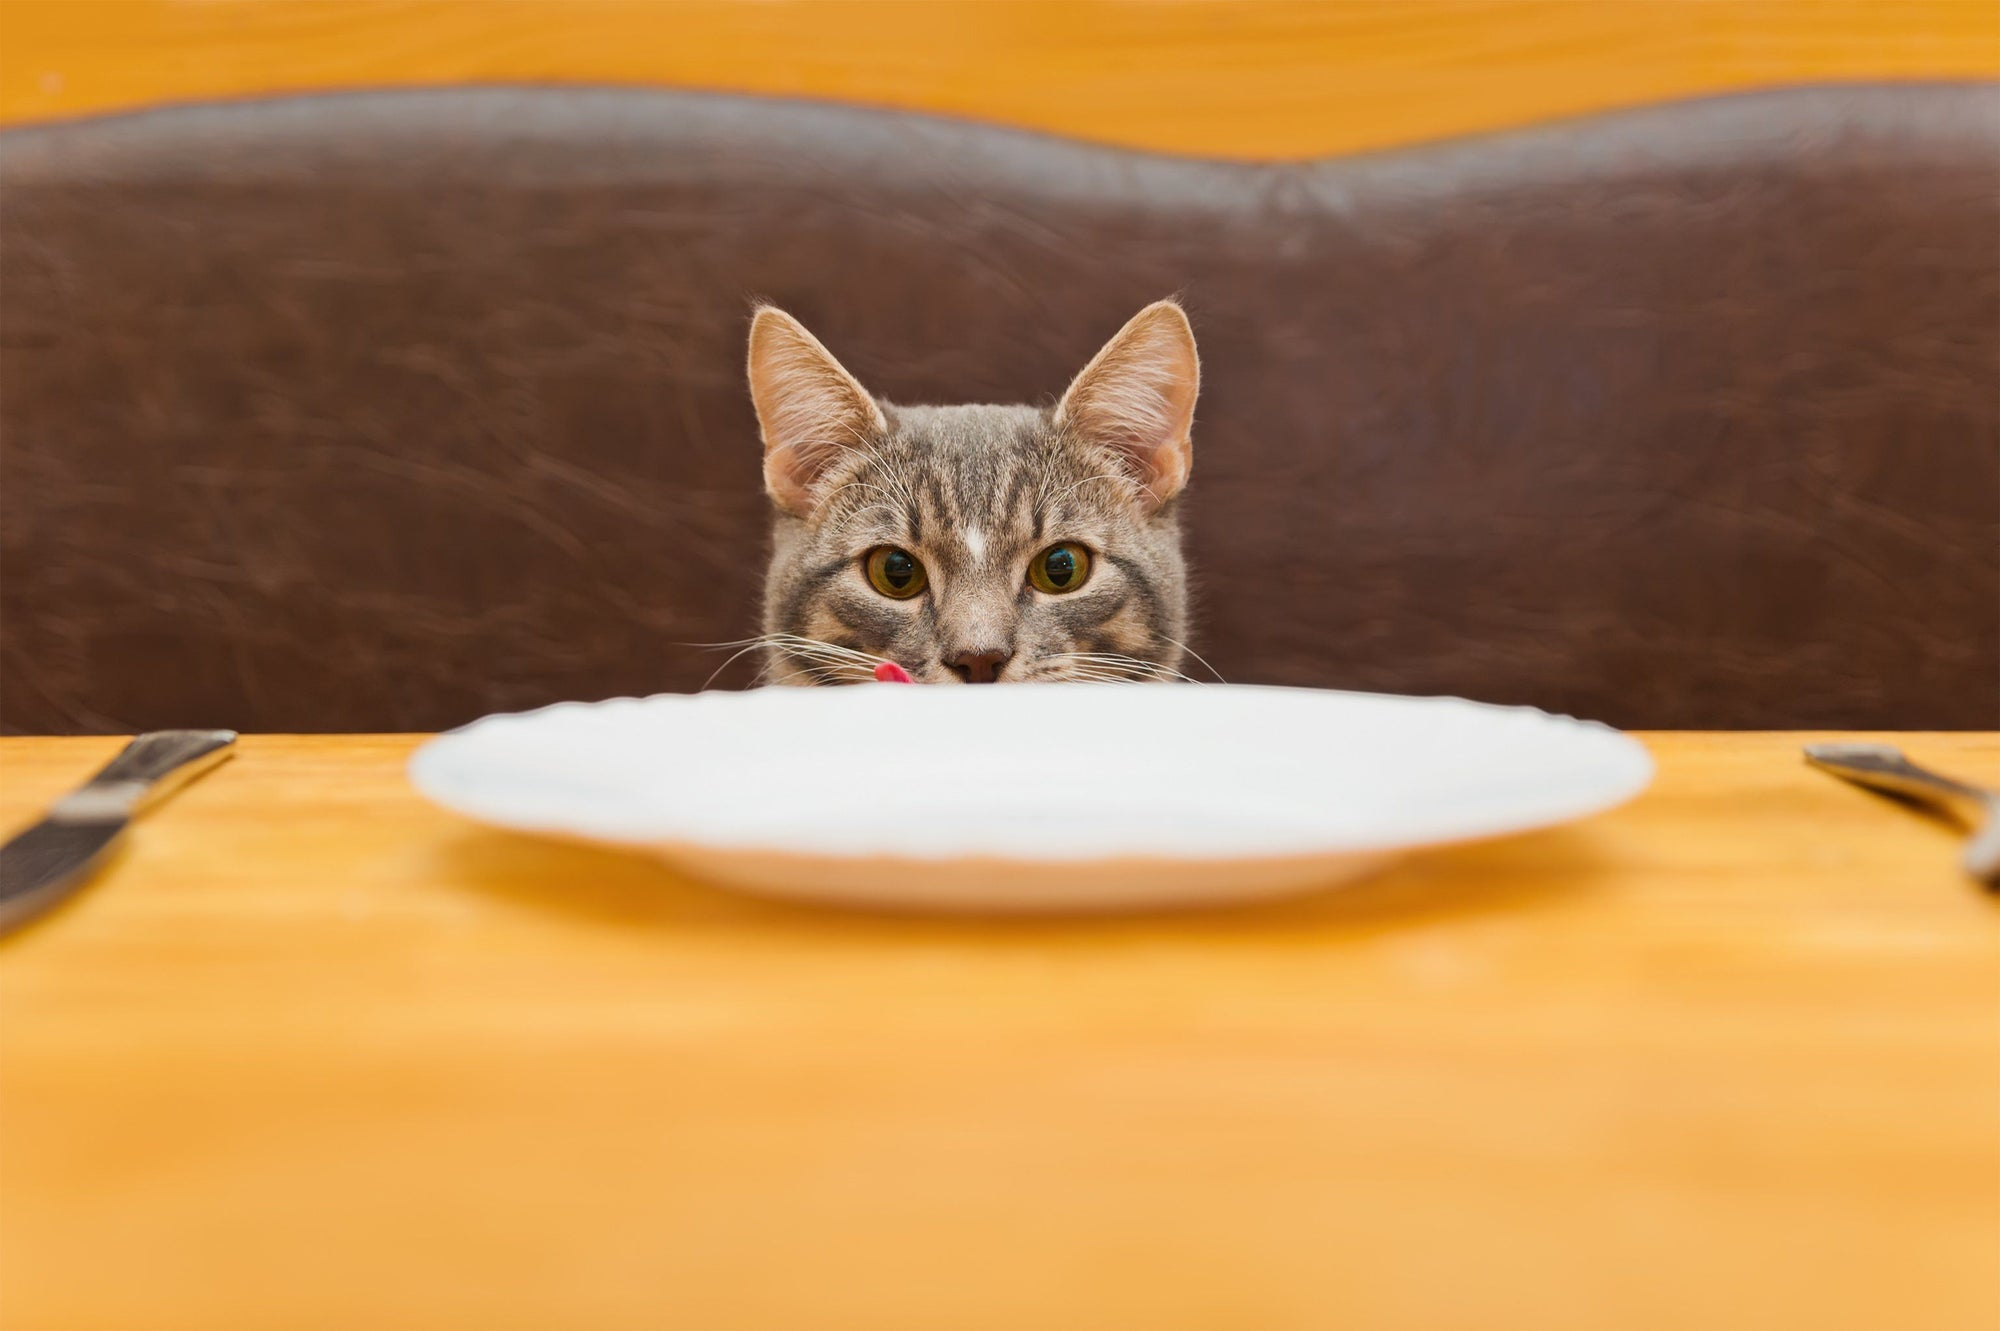 4 Things to Avoid Feeding Your Cat